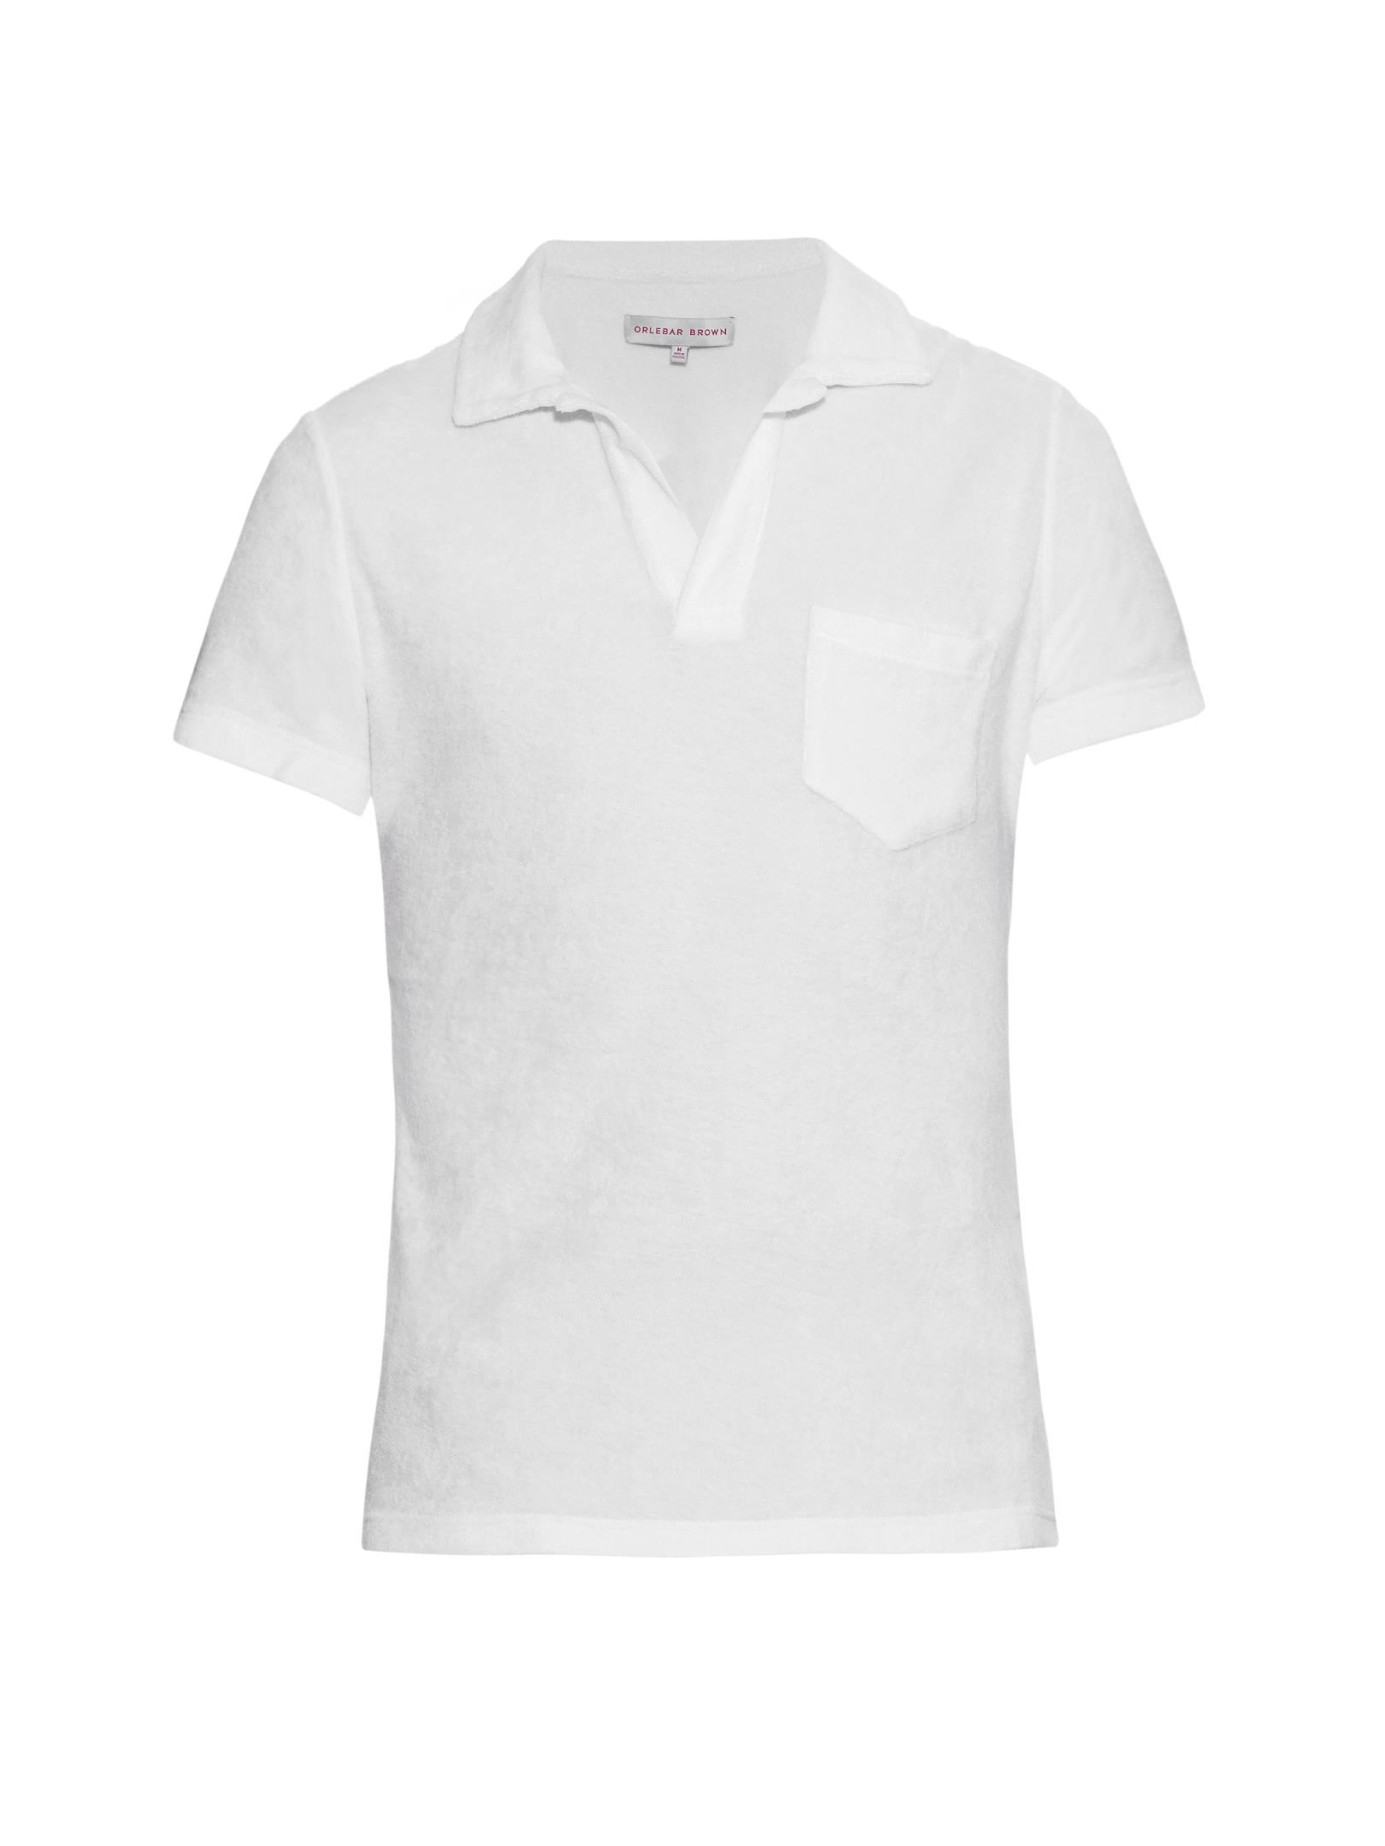 Orlebar brown terry cotton polo shirt in white for men lyst for Mens terry cloth polo shirt